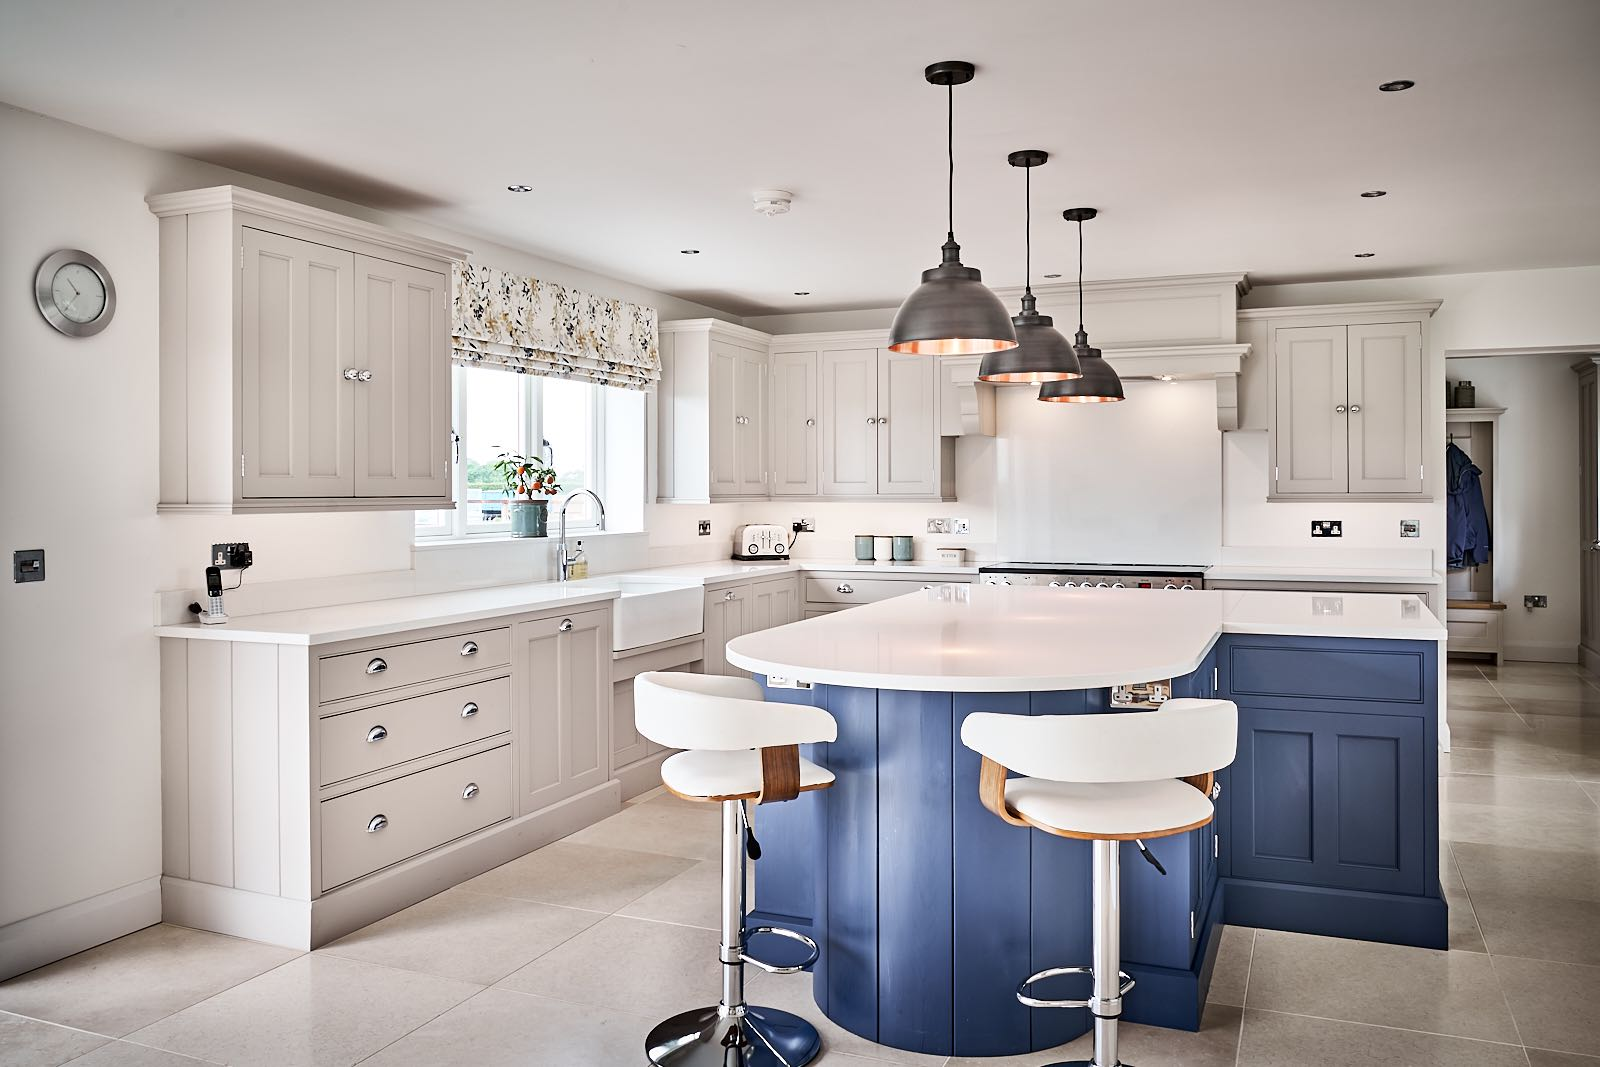 bespoke-kitchen-new-build-nottinghamshire